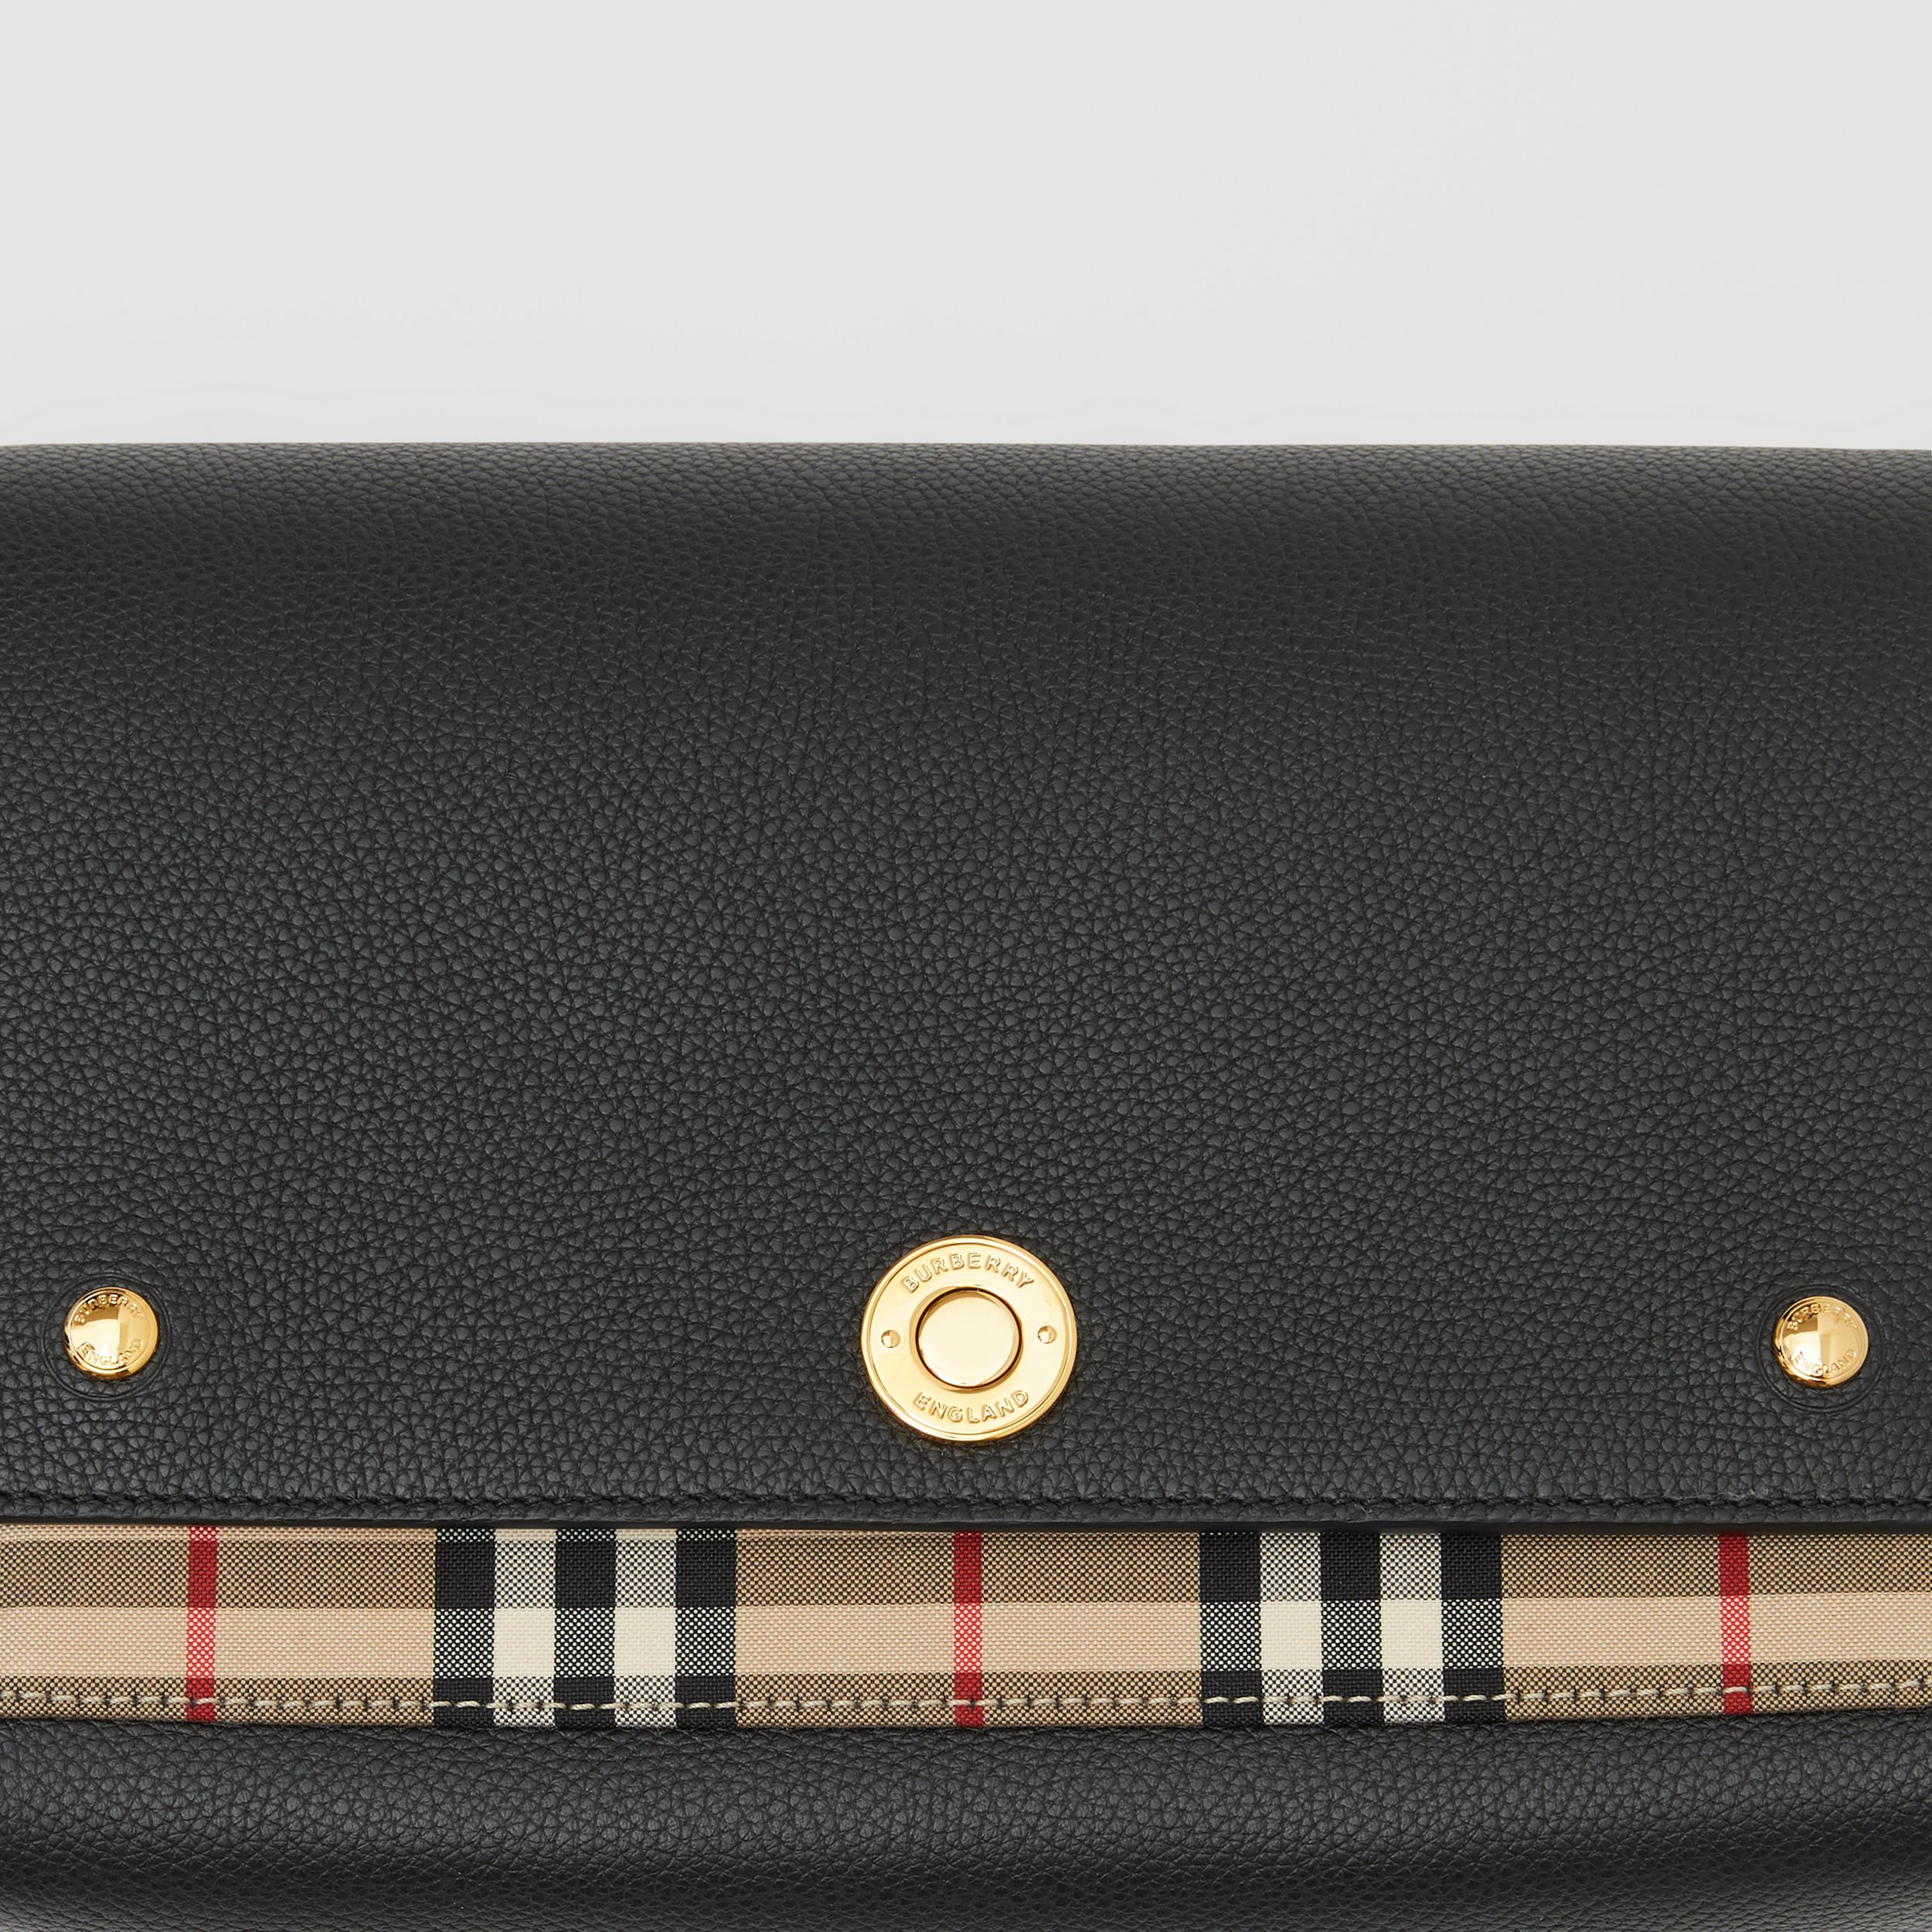 Leather and Vintage Check Note Crossbody Bag in Black - Women | Burberry - 2